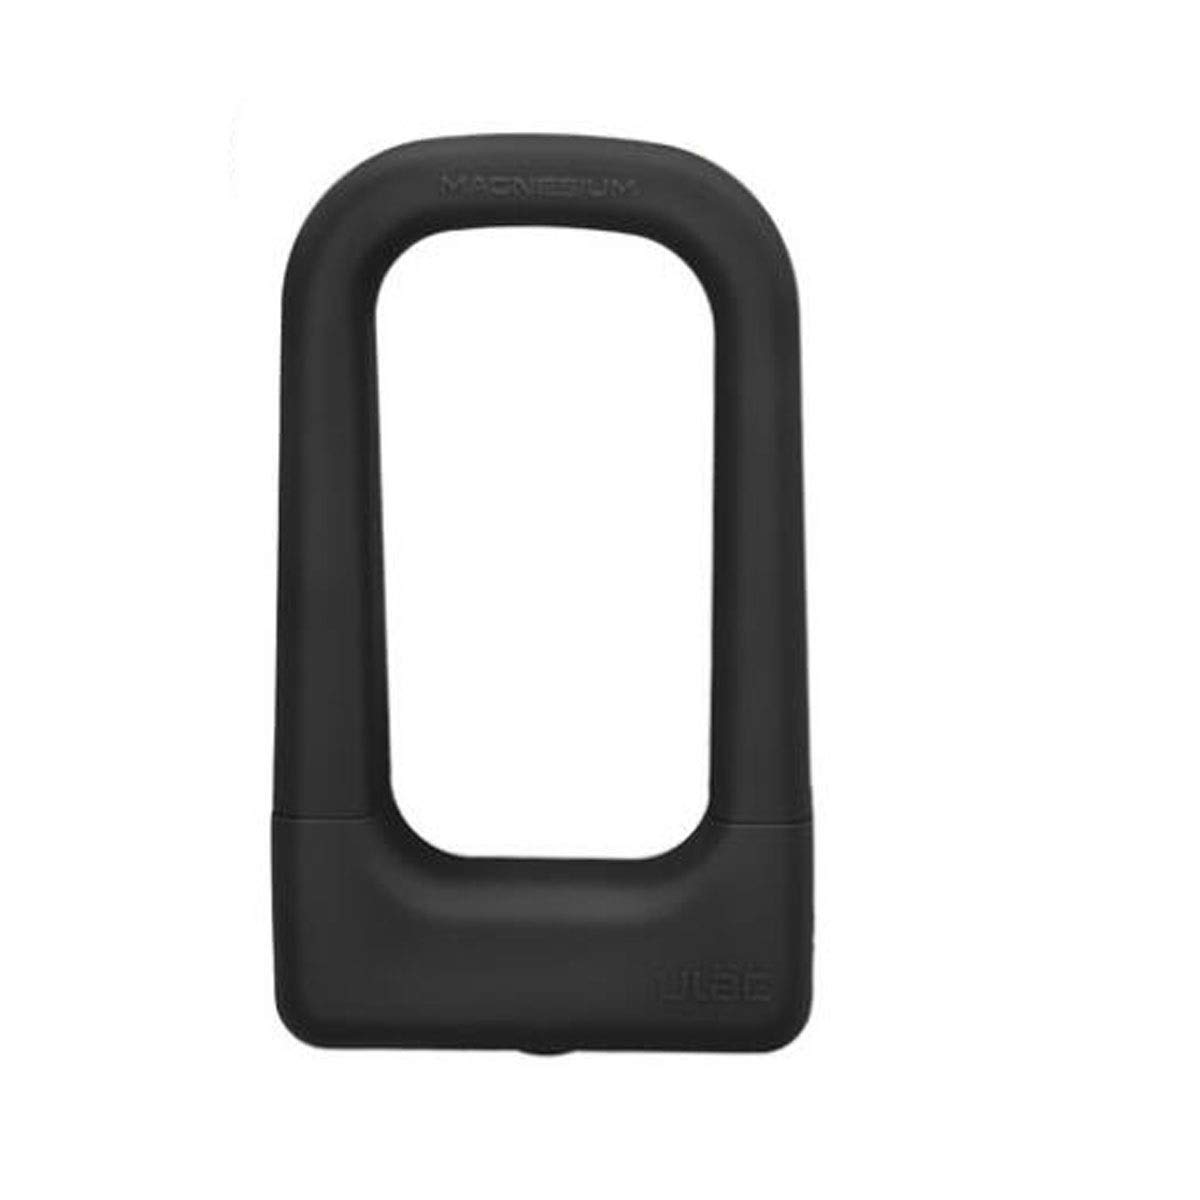 8haowenju Sturdy and Practical U-Lock for Mountain Bikes, Electric Cars, Motorcycles, Size: 4.828 Inches, Color: Black, Blue, Orange (Color : Black)